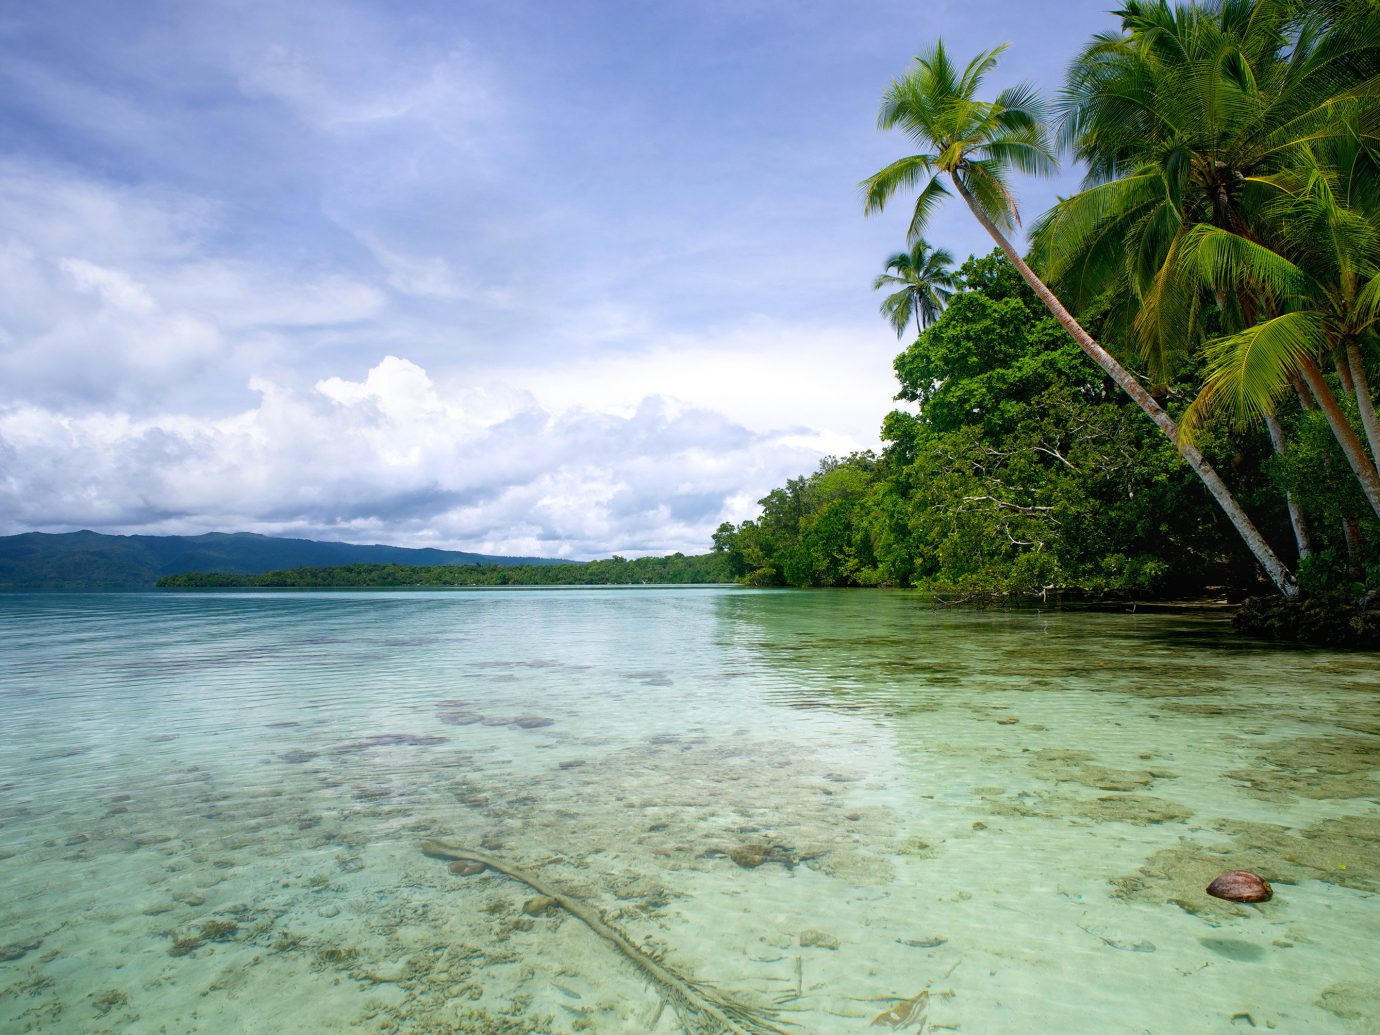 Islands Trip Ideas outdoor sky water tropics body of water Sea coastal and oceanic landforms shore vegetation Ocean Coast arecales palm tree Beach tree cloud caribbean Island Lagoon bay water resources Nature vacation islet landscape Jungle tourism River bank sandy day